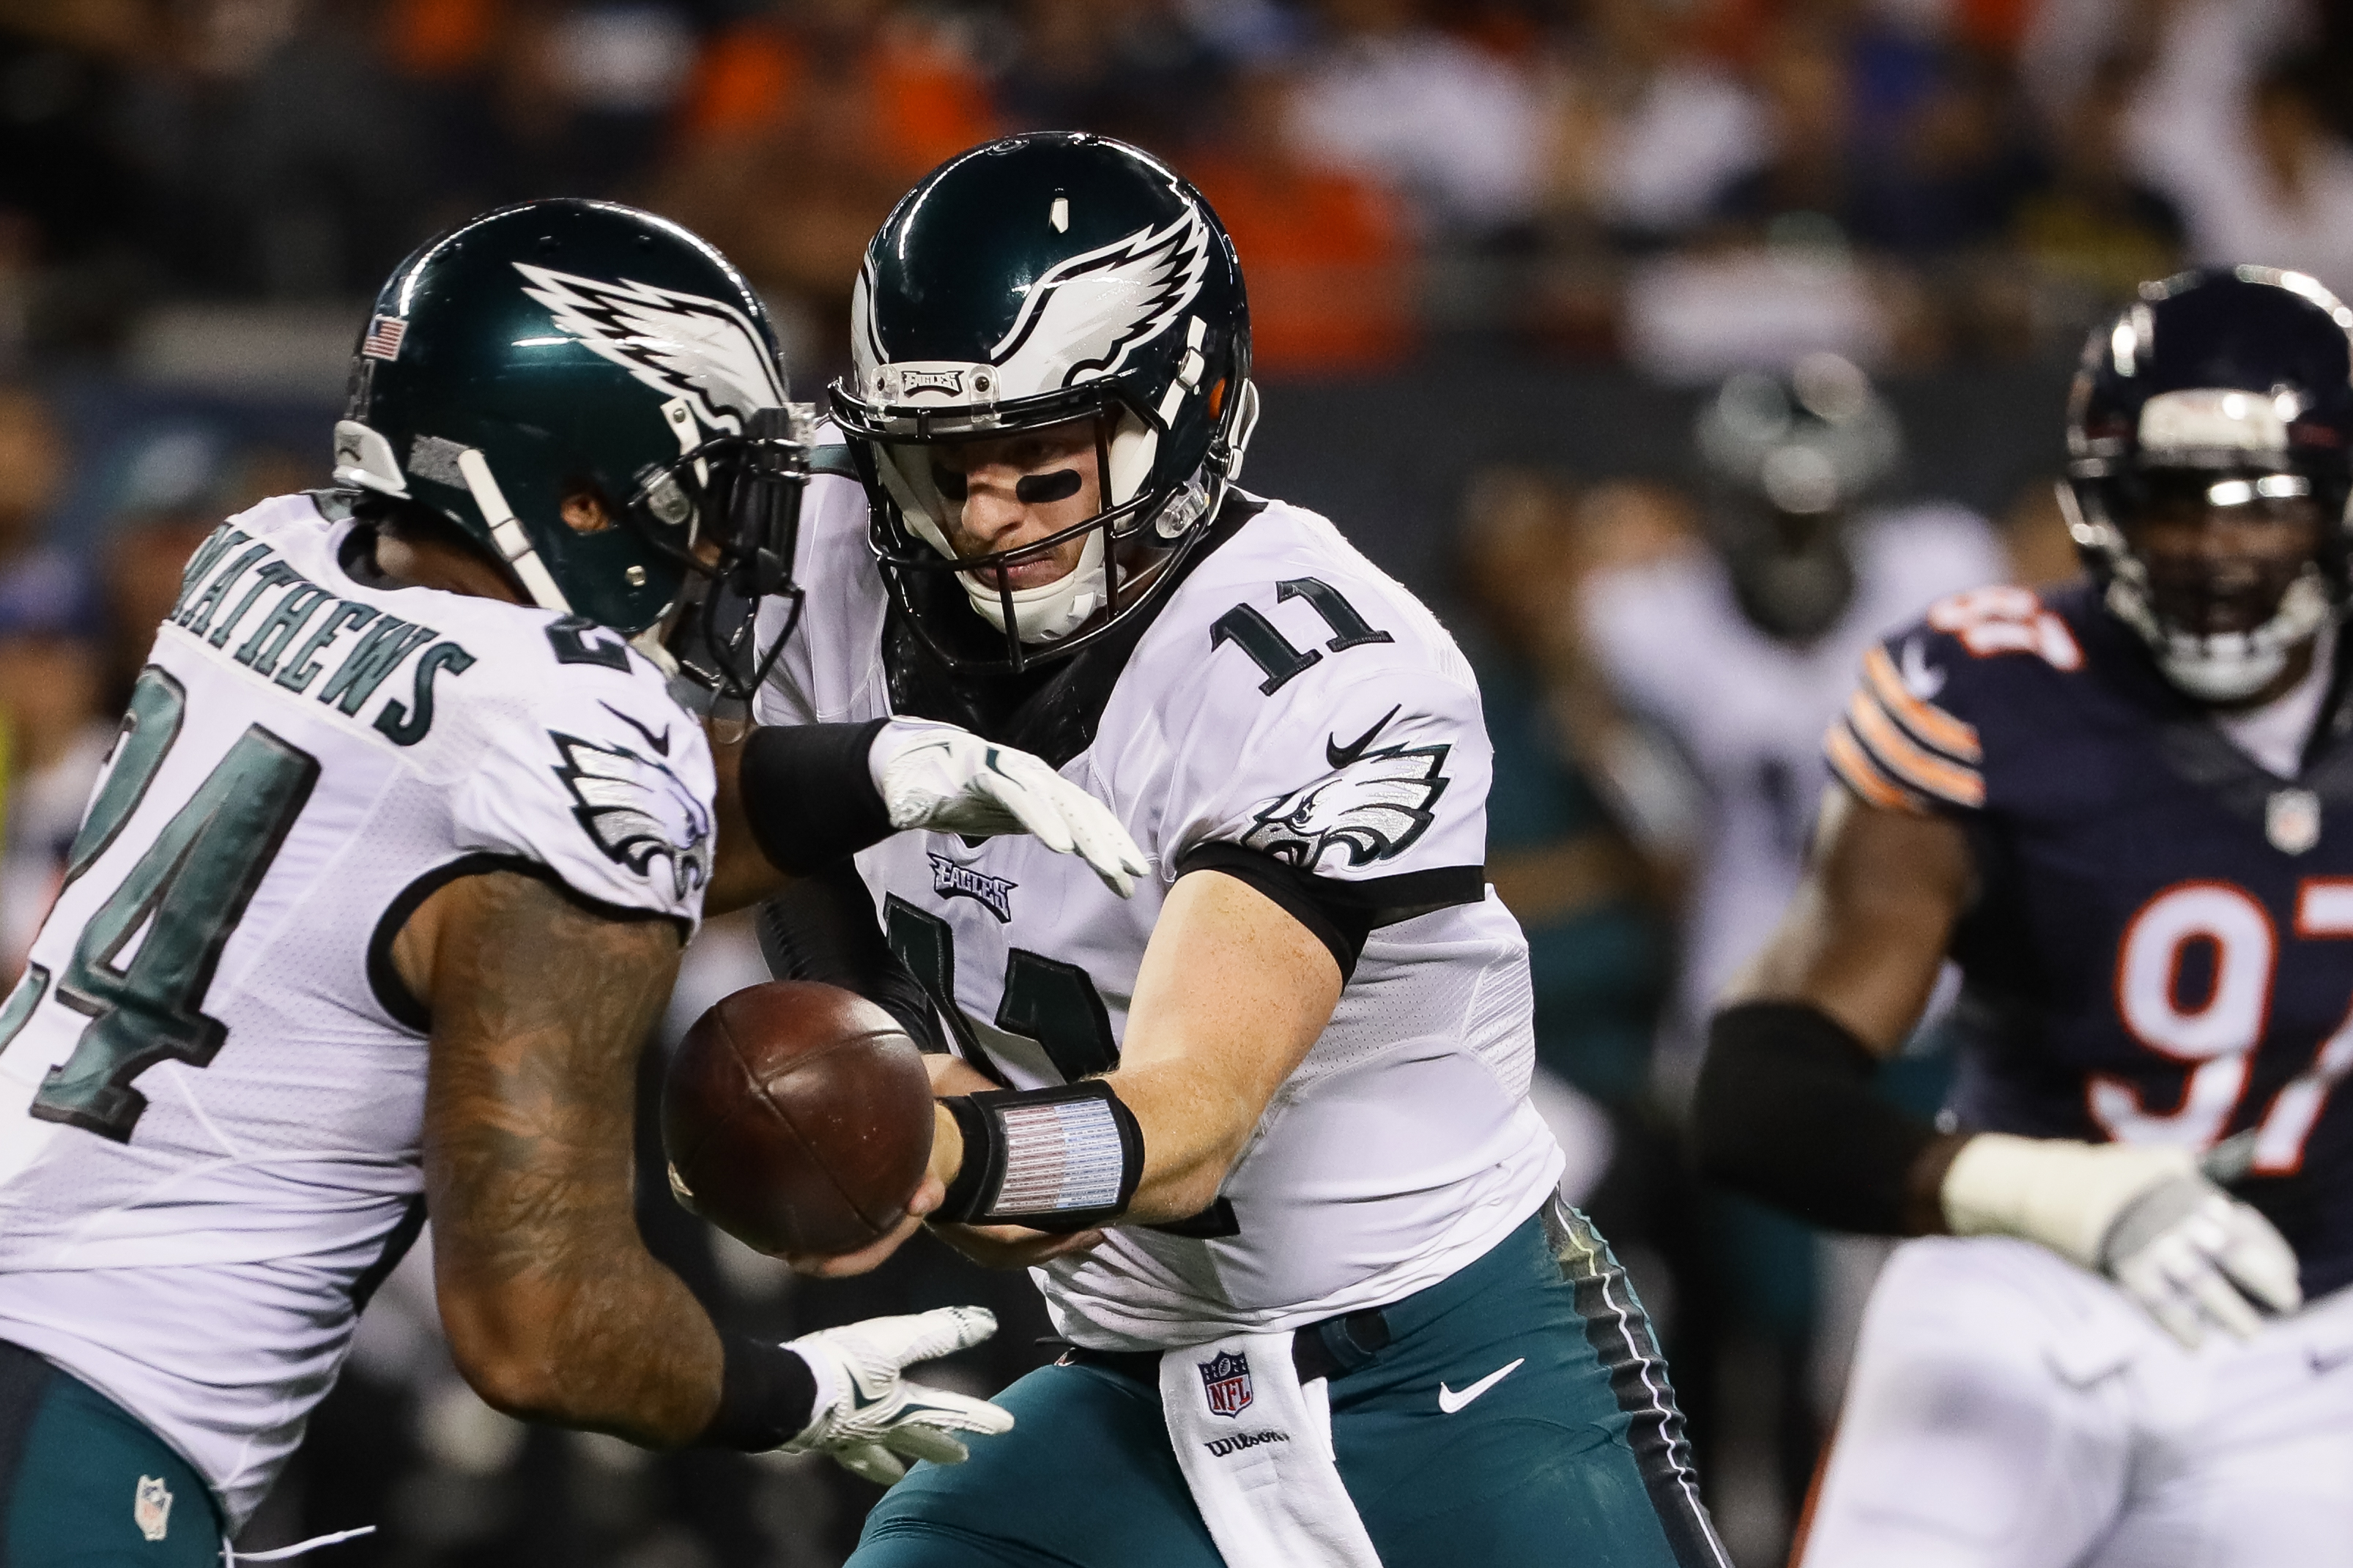 CHICAGO, IL - SEPTEMBER 19:  Quarterback Carson Wentz #11 of the Philadelphia Eagles hands off the football to Ryan Mathews #24 in the first half against the Chicago Bears at Soldier Field on September 19, 2016 in Chicago, Illinois.  (Photo by Jonathan Daniel/Getty Images)